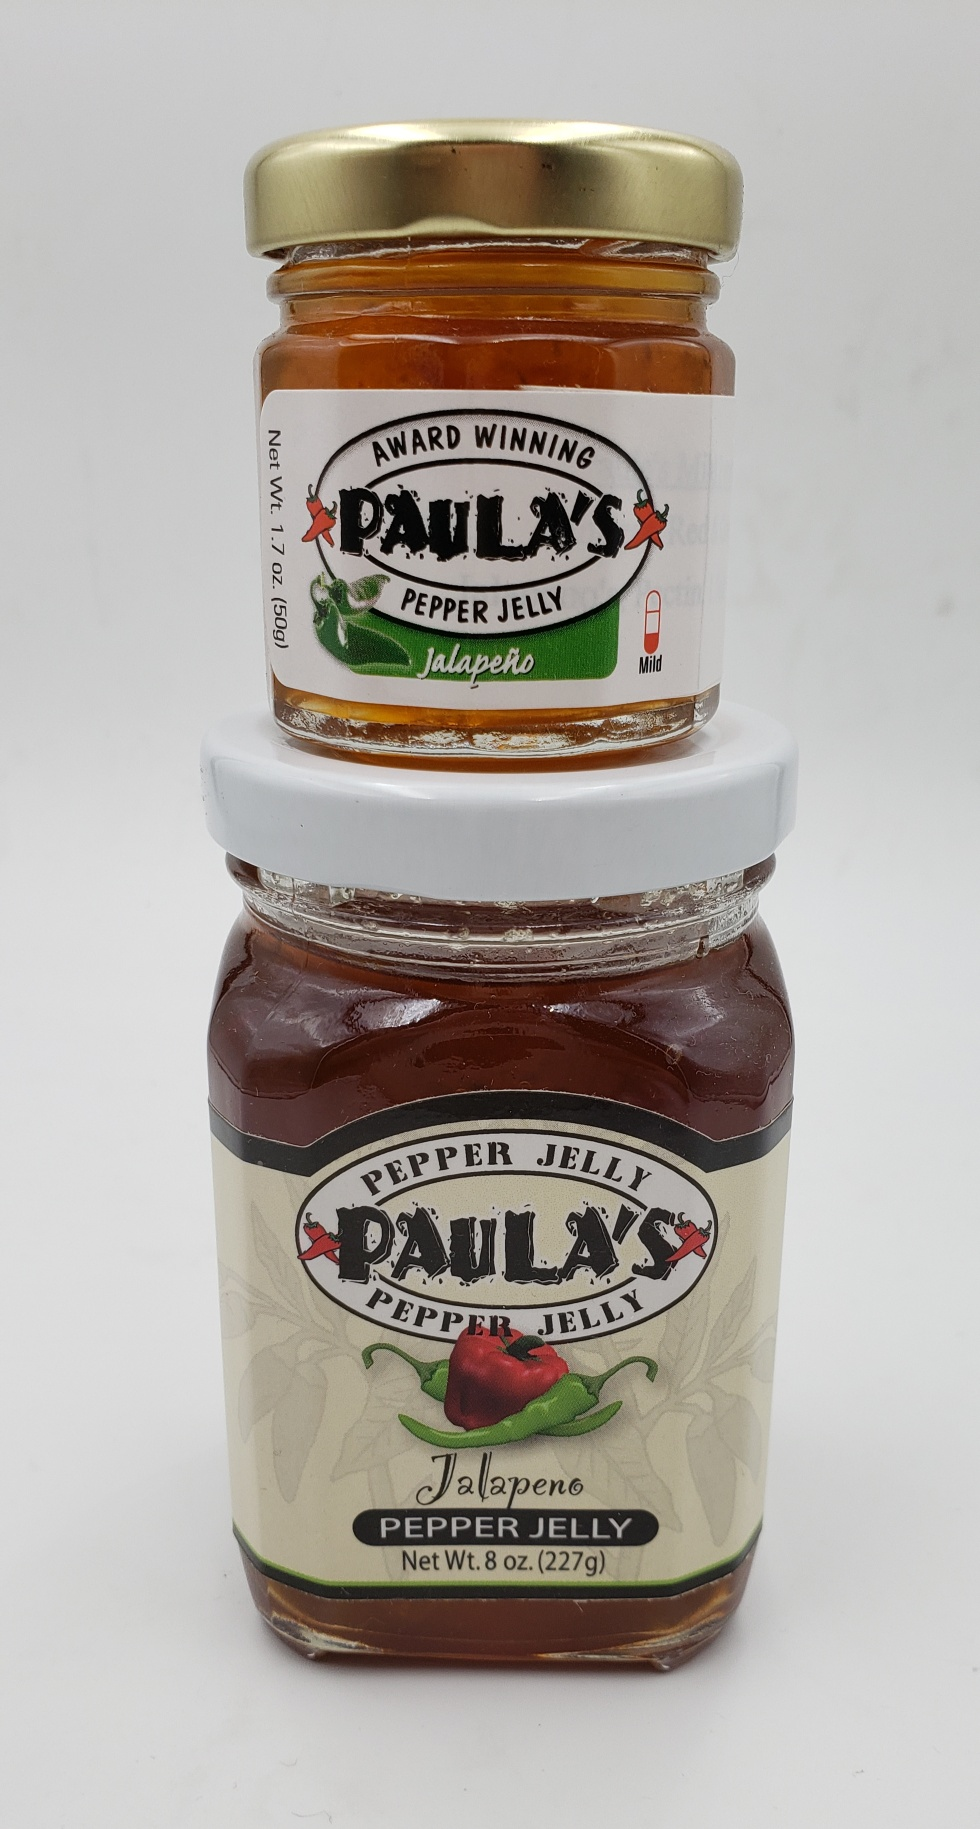 The 1.7 oz. Paula's Pepper Jelly Jar on top of the 8 oz. Jalapeno Pepper Jelly both label out.